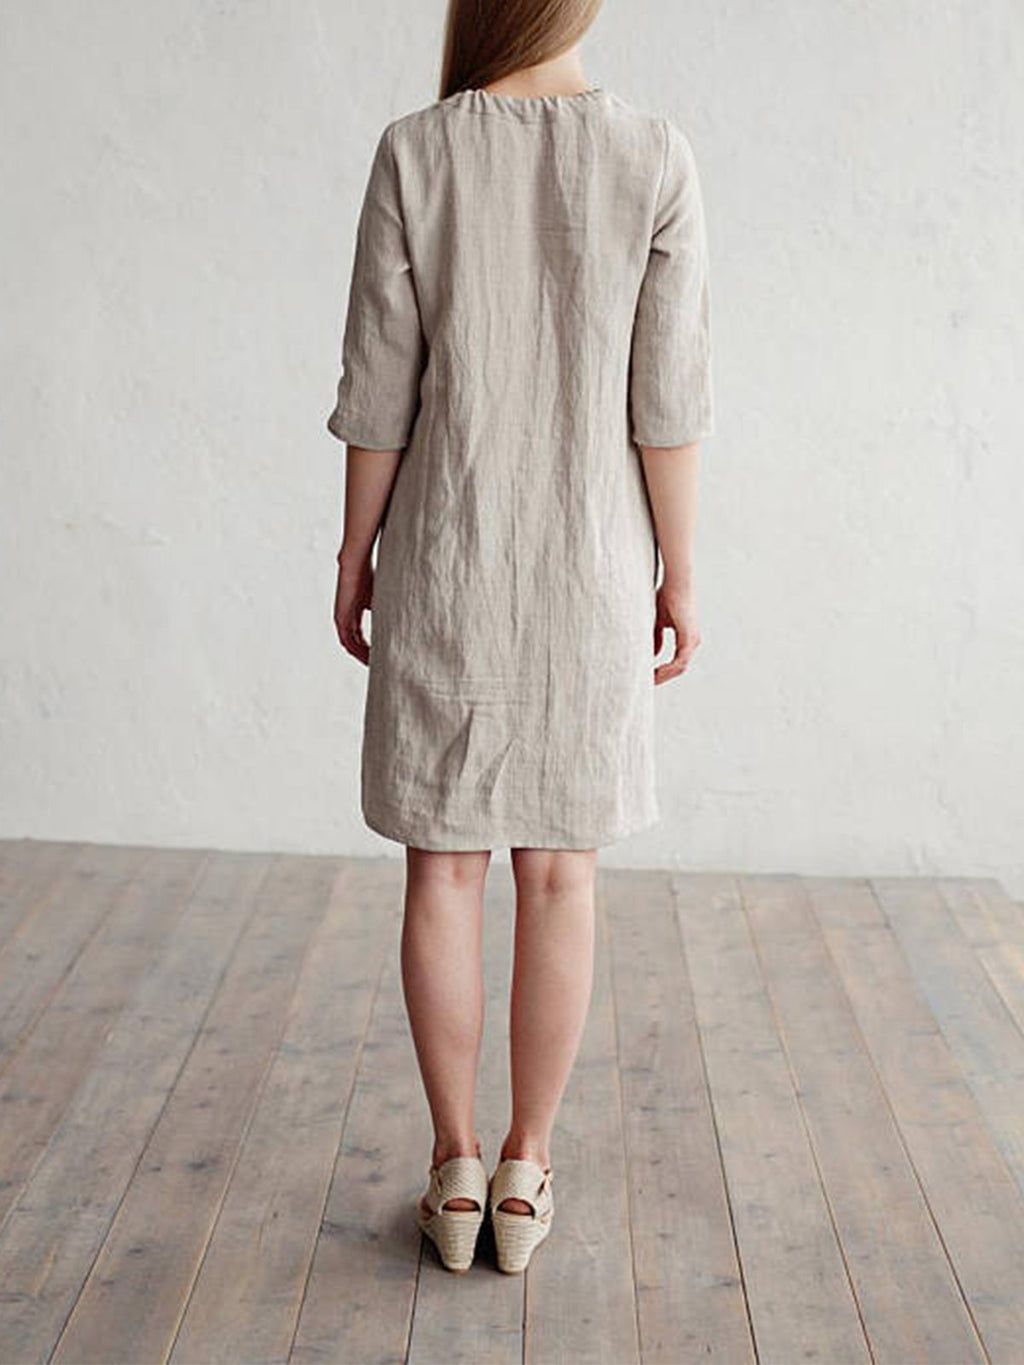 Bow Trim Gathering Neck Solid Linen/Cotton Half Sleeve Dress